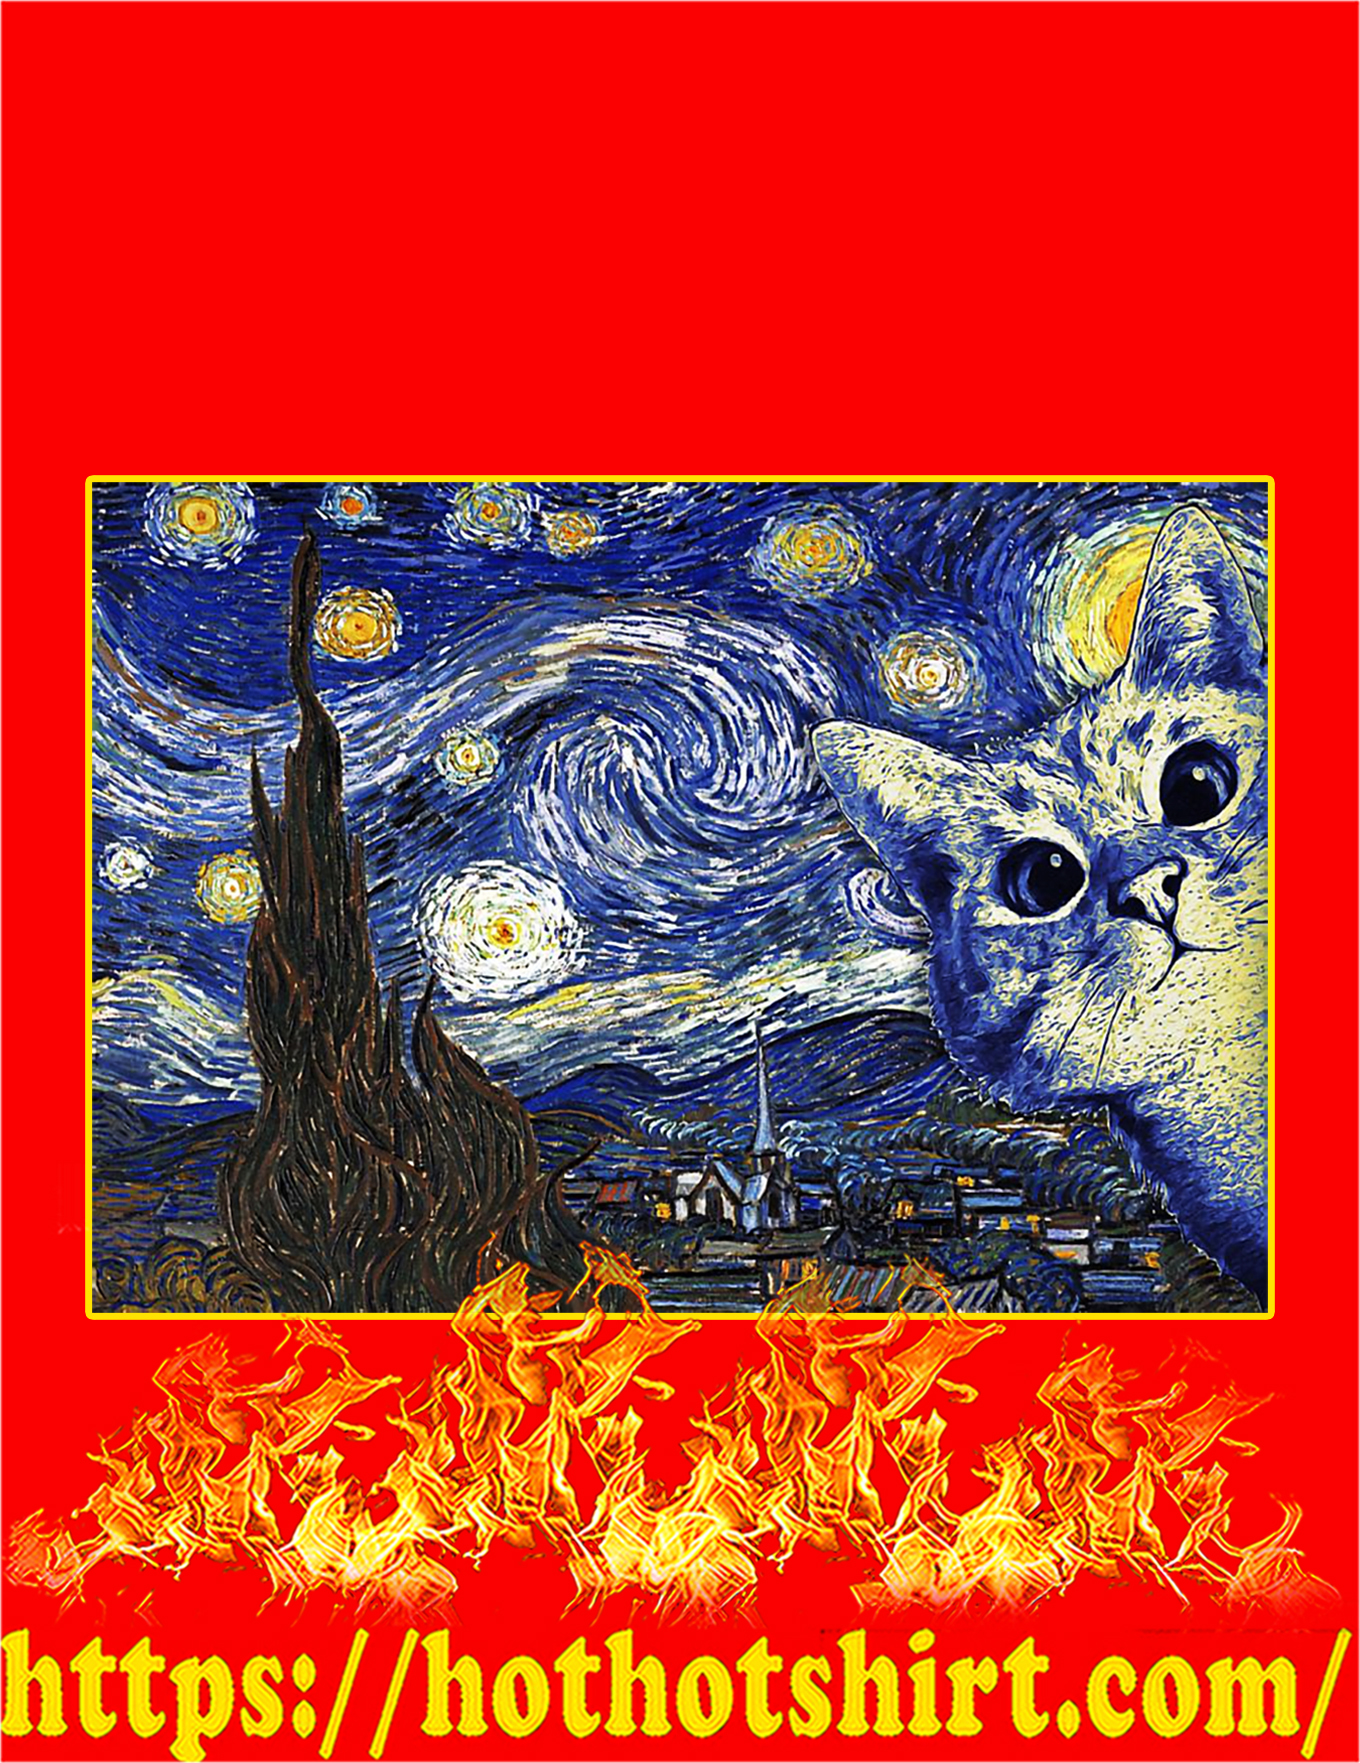 Cat The Starry Night Van Gogh Poster - A3